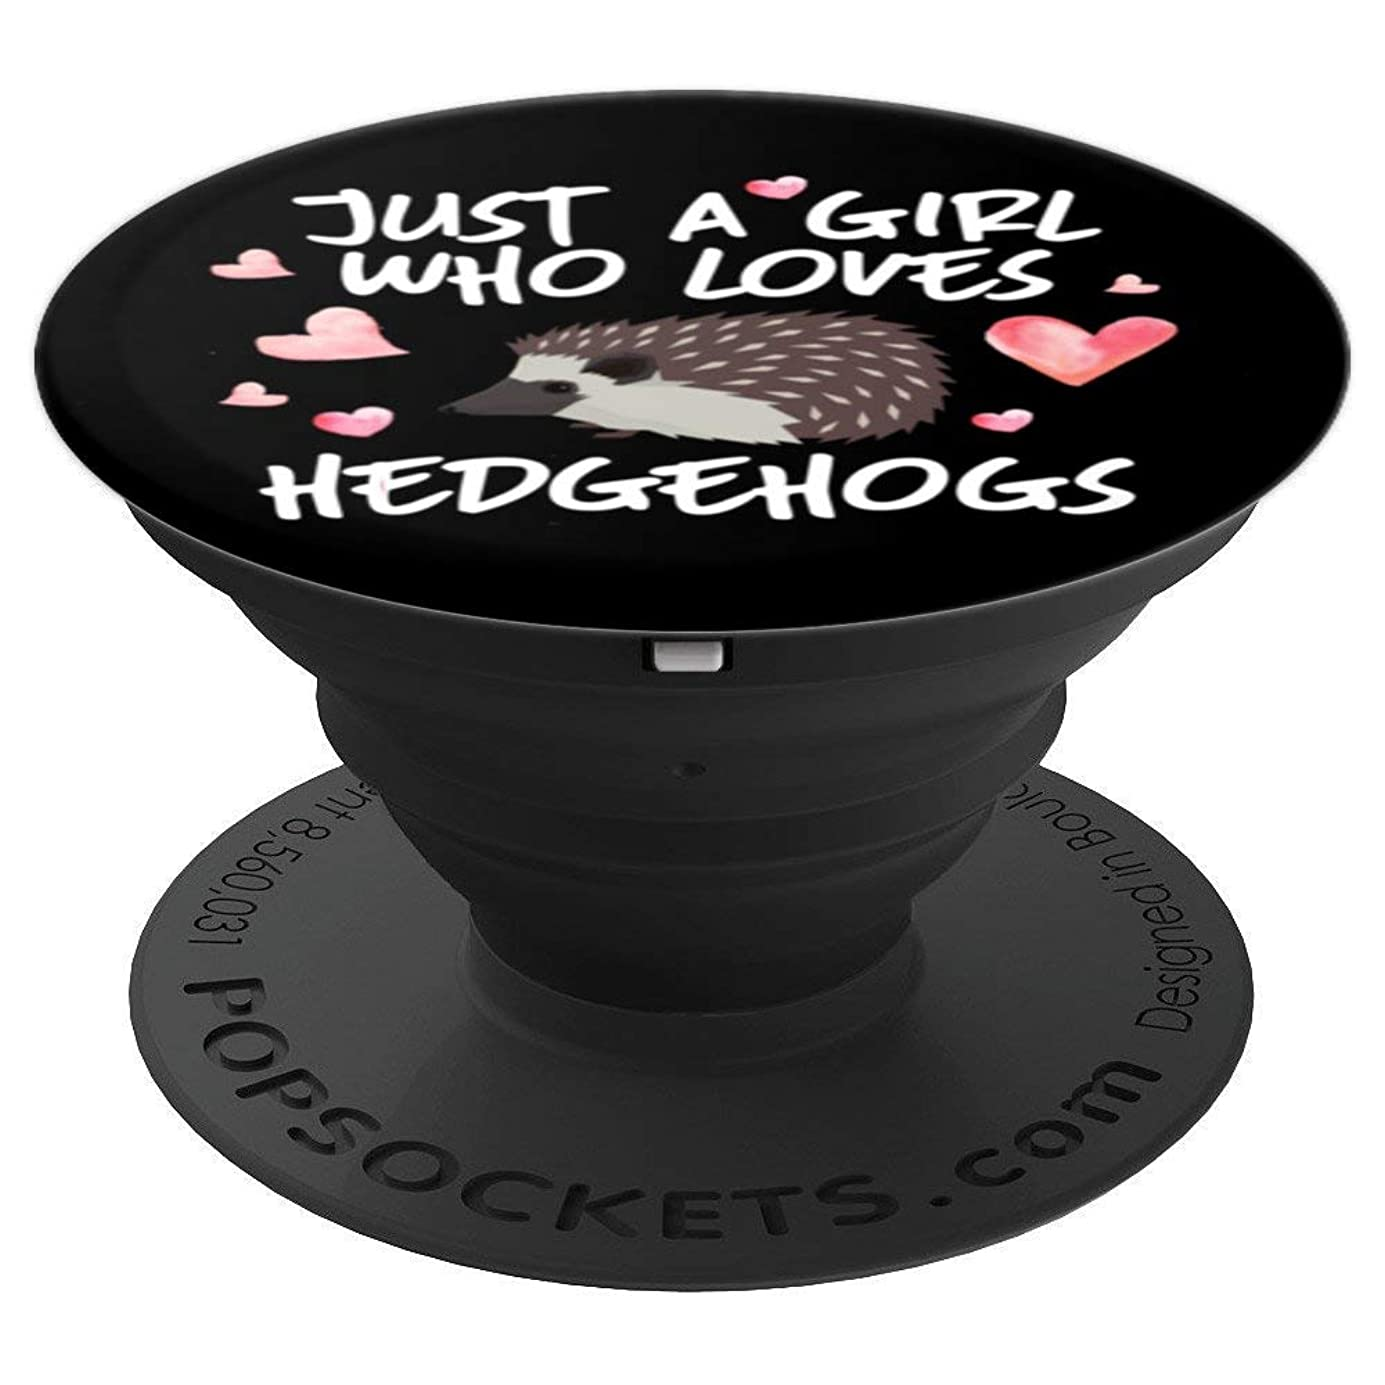 Just A Girl Who Loves Hedgehogs Funny Cute Hedgehog Gift - PopSockets Grip and Stand for Phones and Tablets gzflds3860